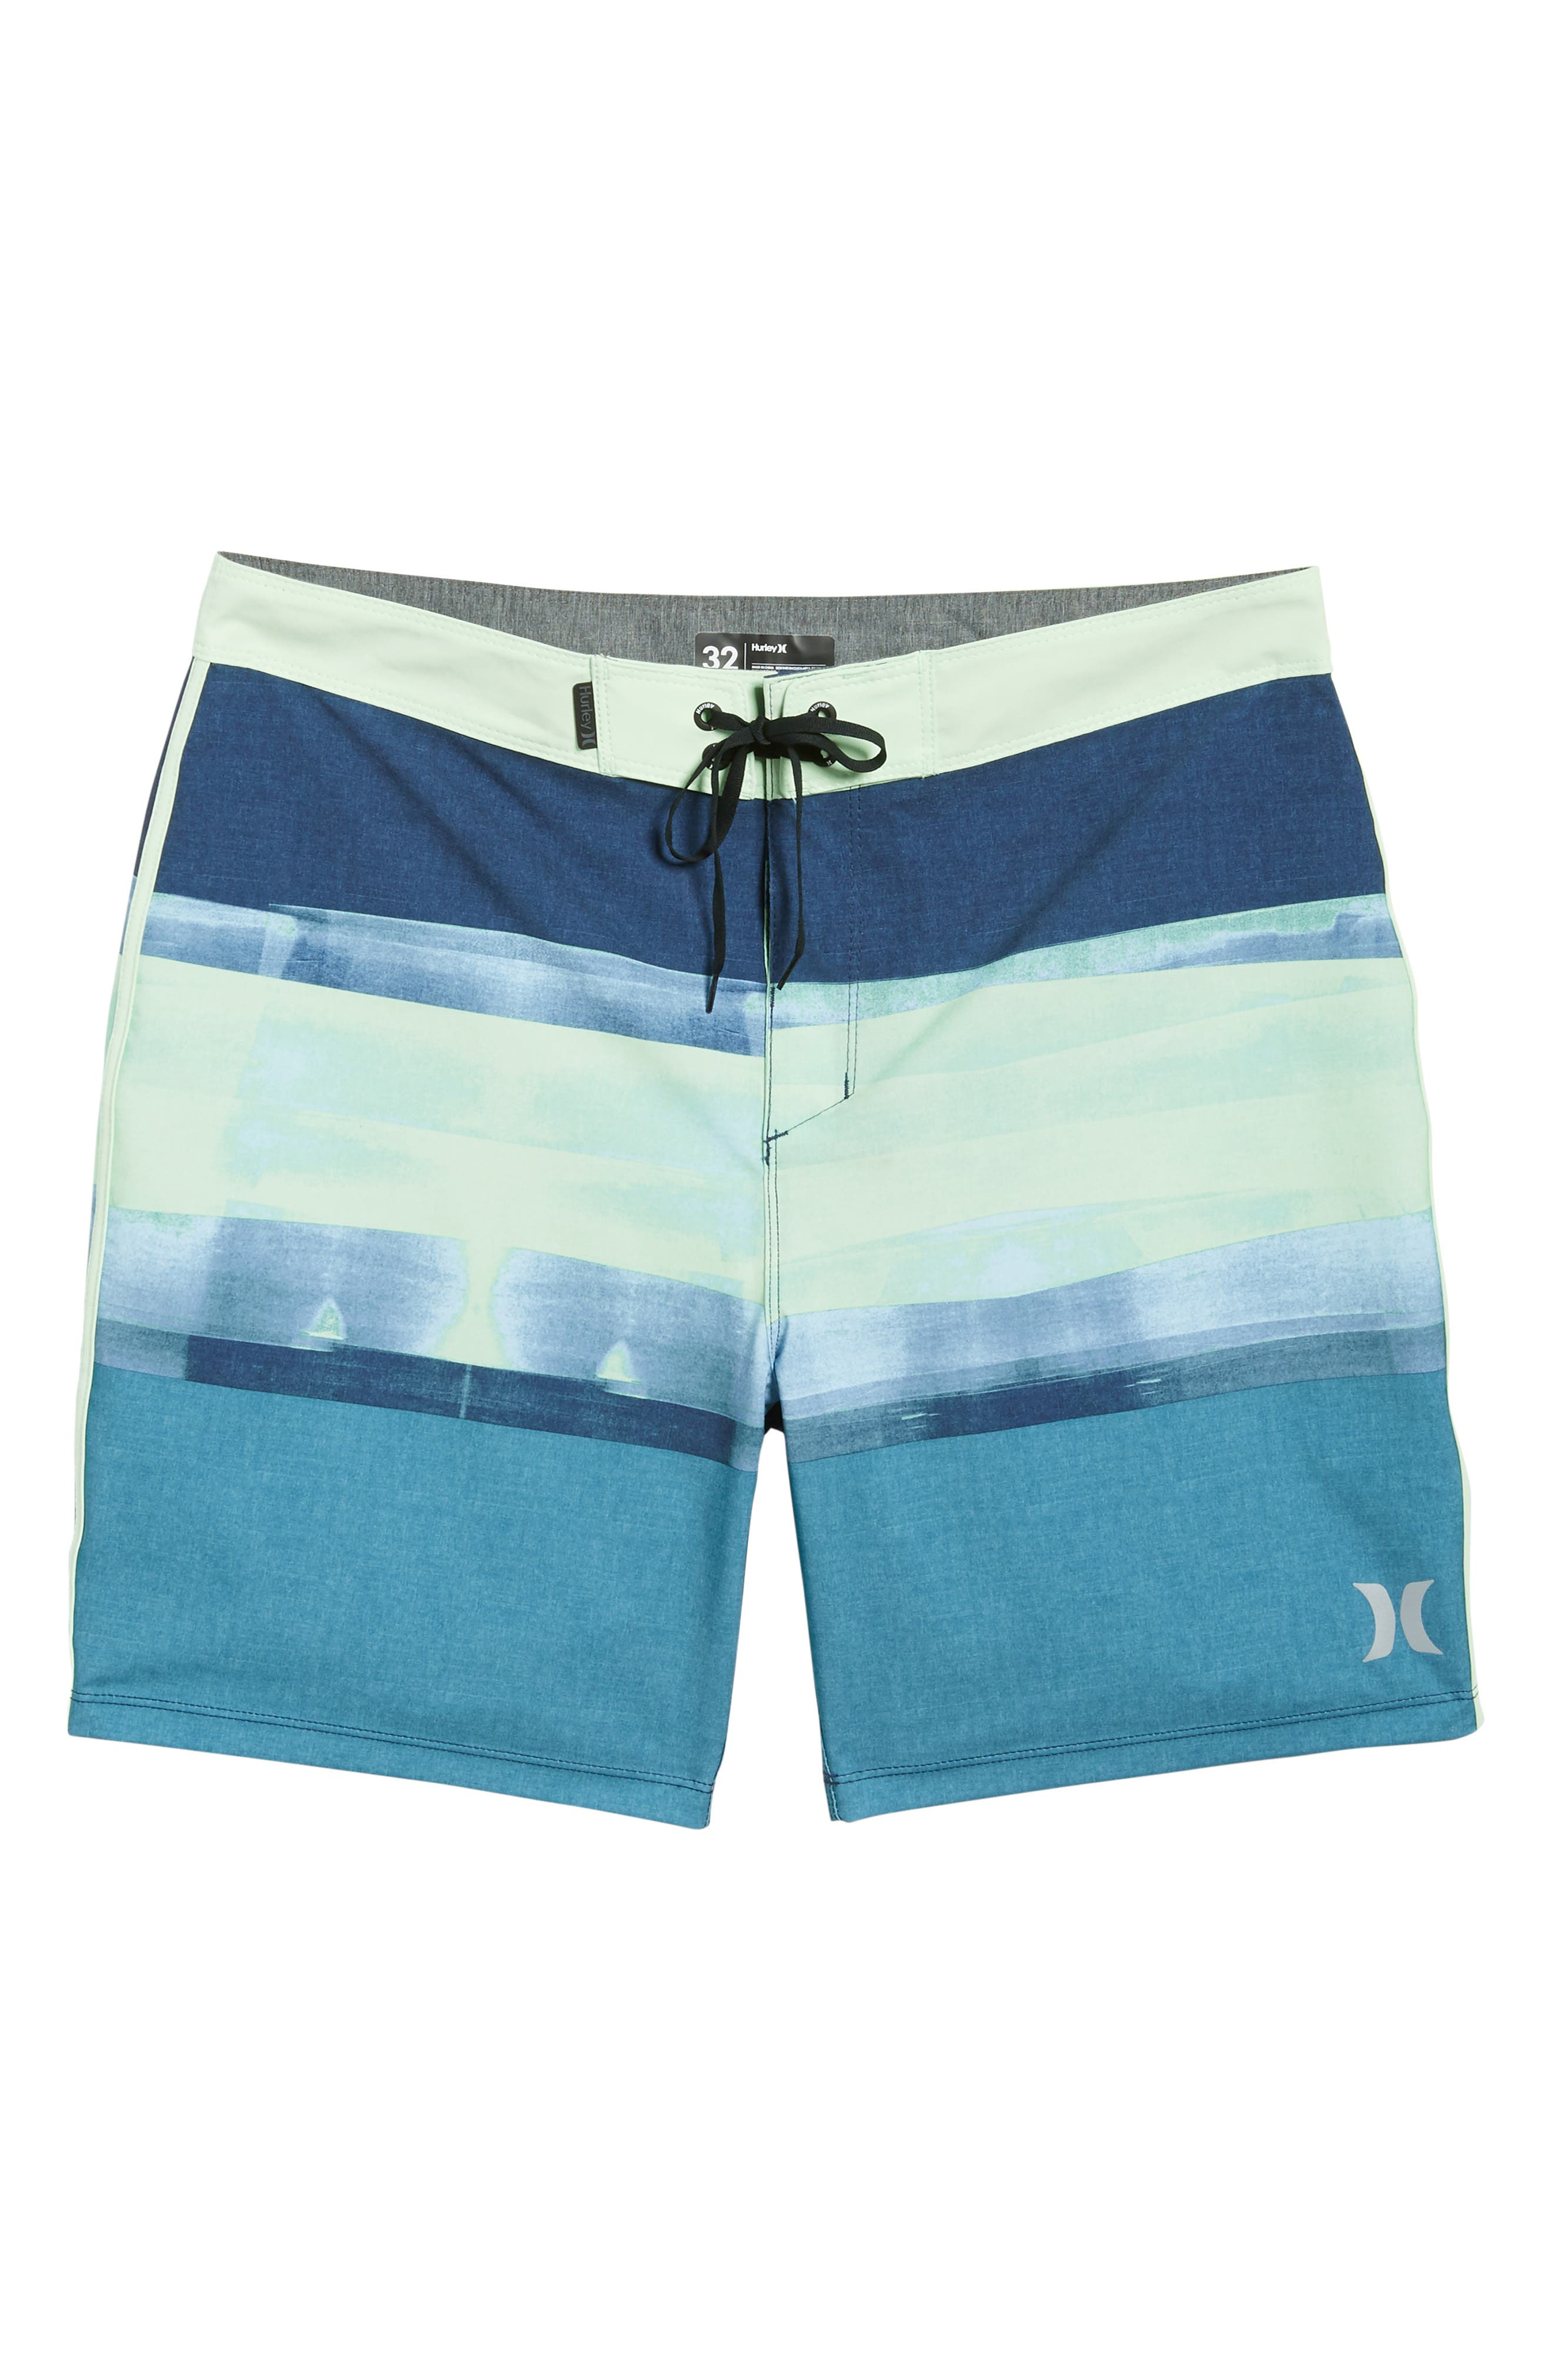 Phantom Roll Out Board Shorts,                             Alternate thumbnail 12, color,